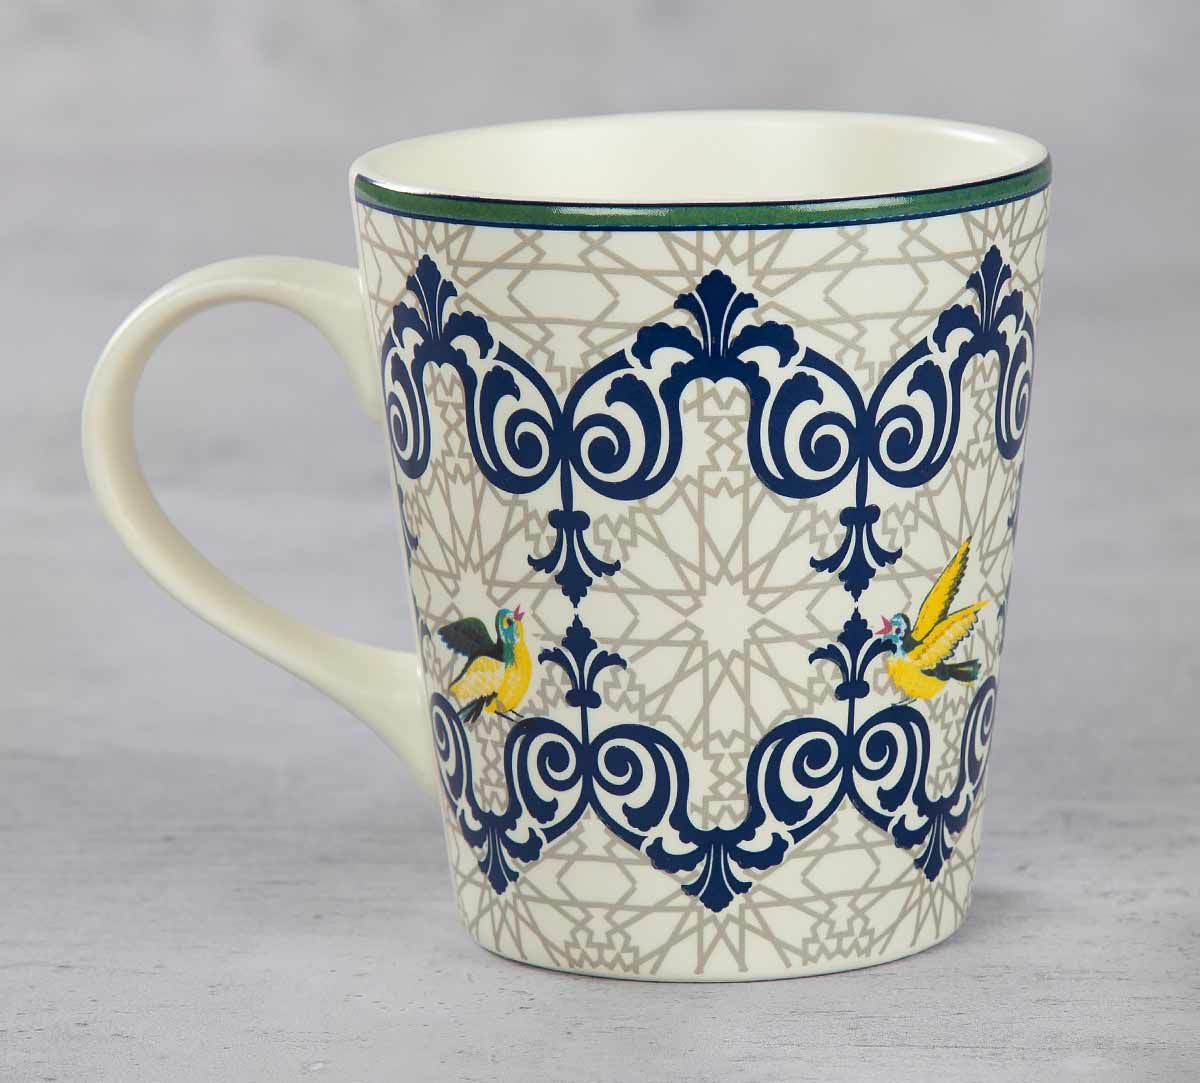 Buy stylish designer coffee mugs online on indiacircus.com